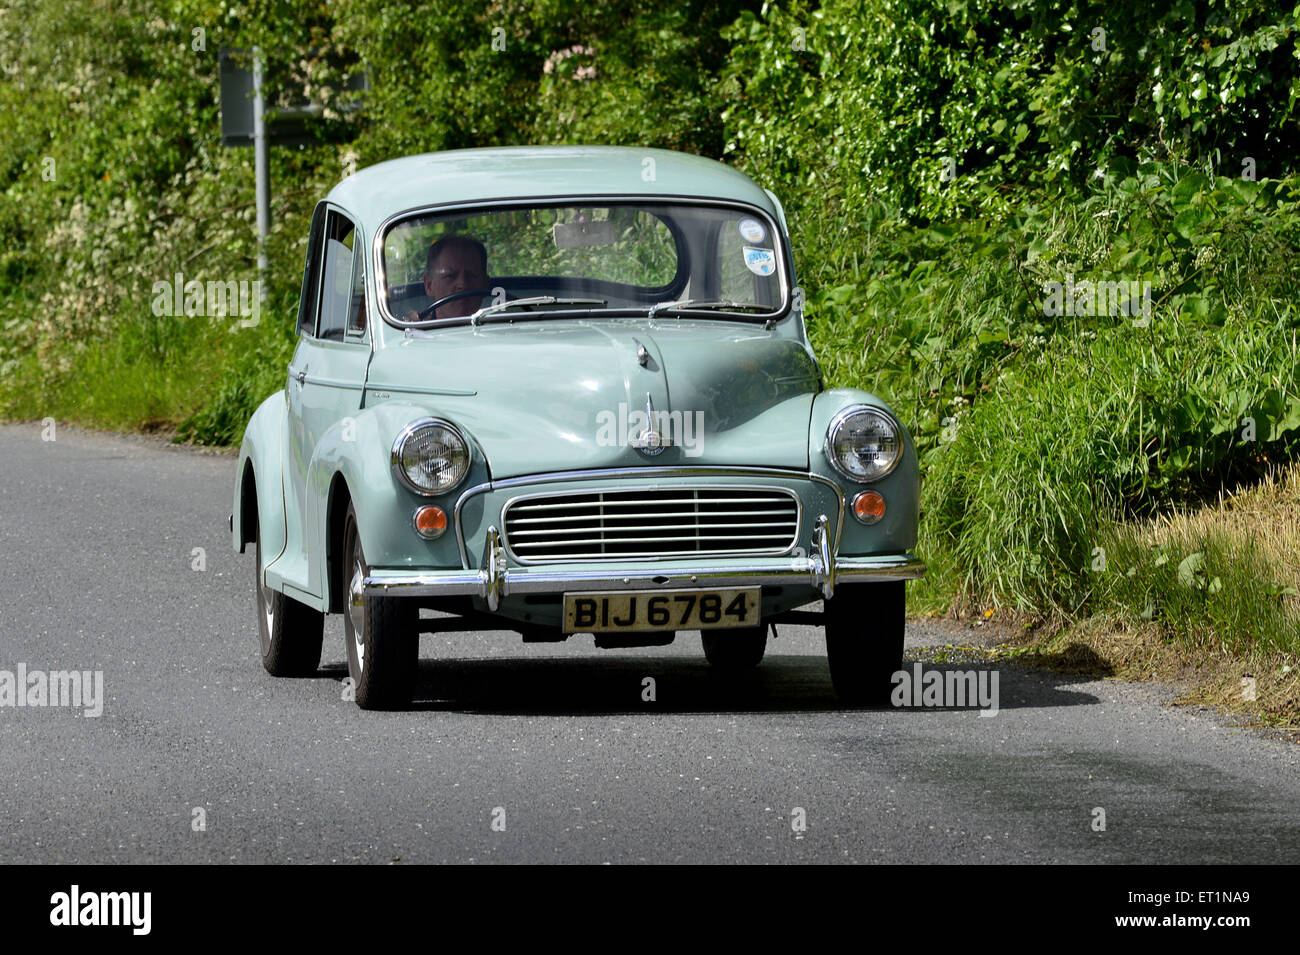 1960s Austin Morris Minor classic car on country road, Burnfoot, County Donegal, Ireland - Stock Image